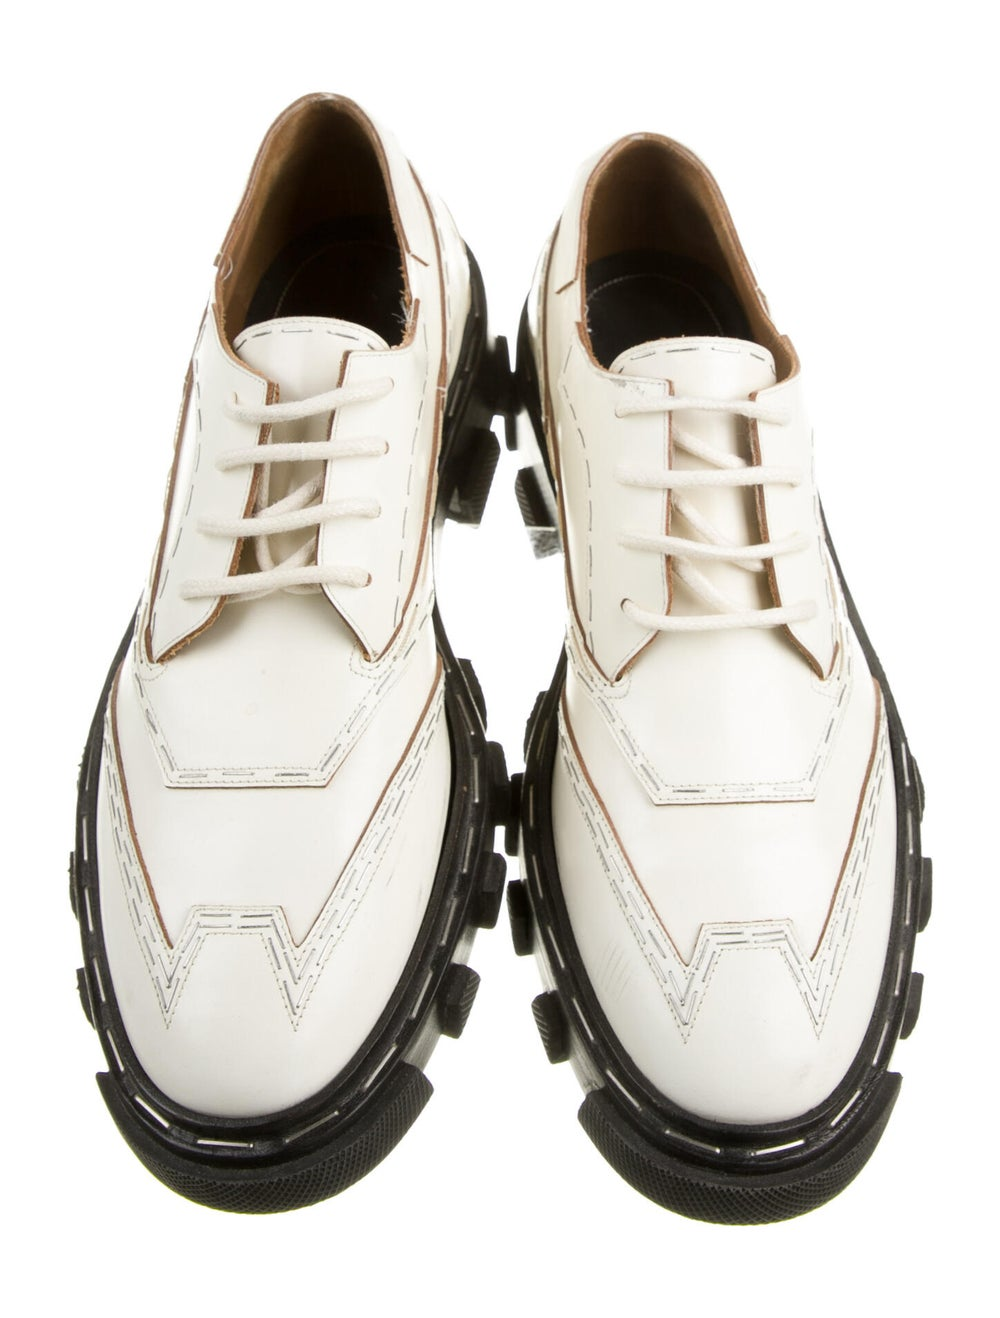 Balenciaga Leather Oxfords - image 3